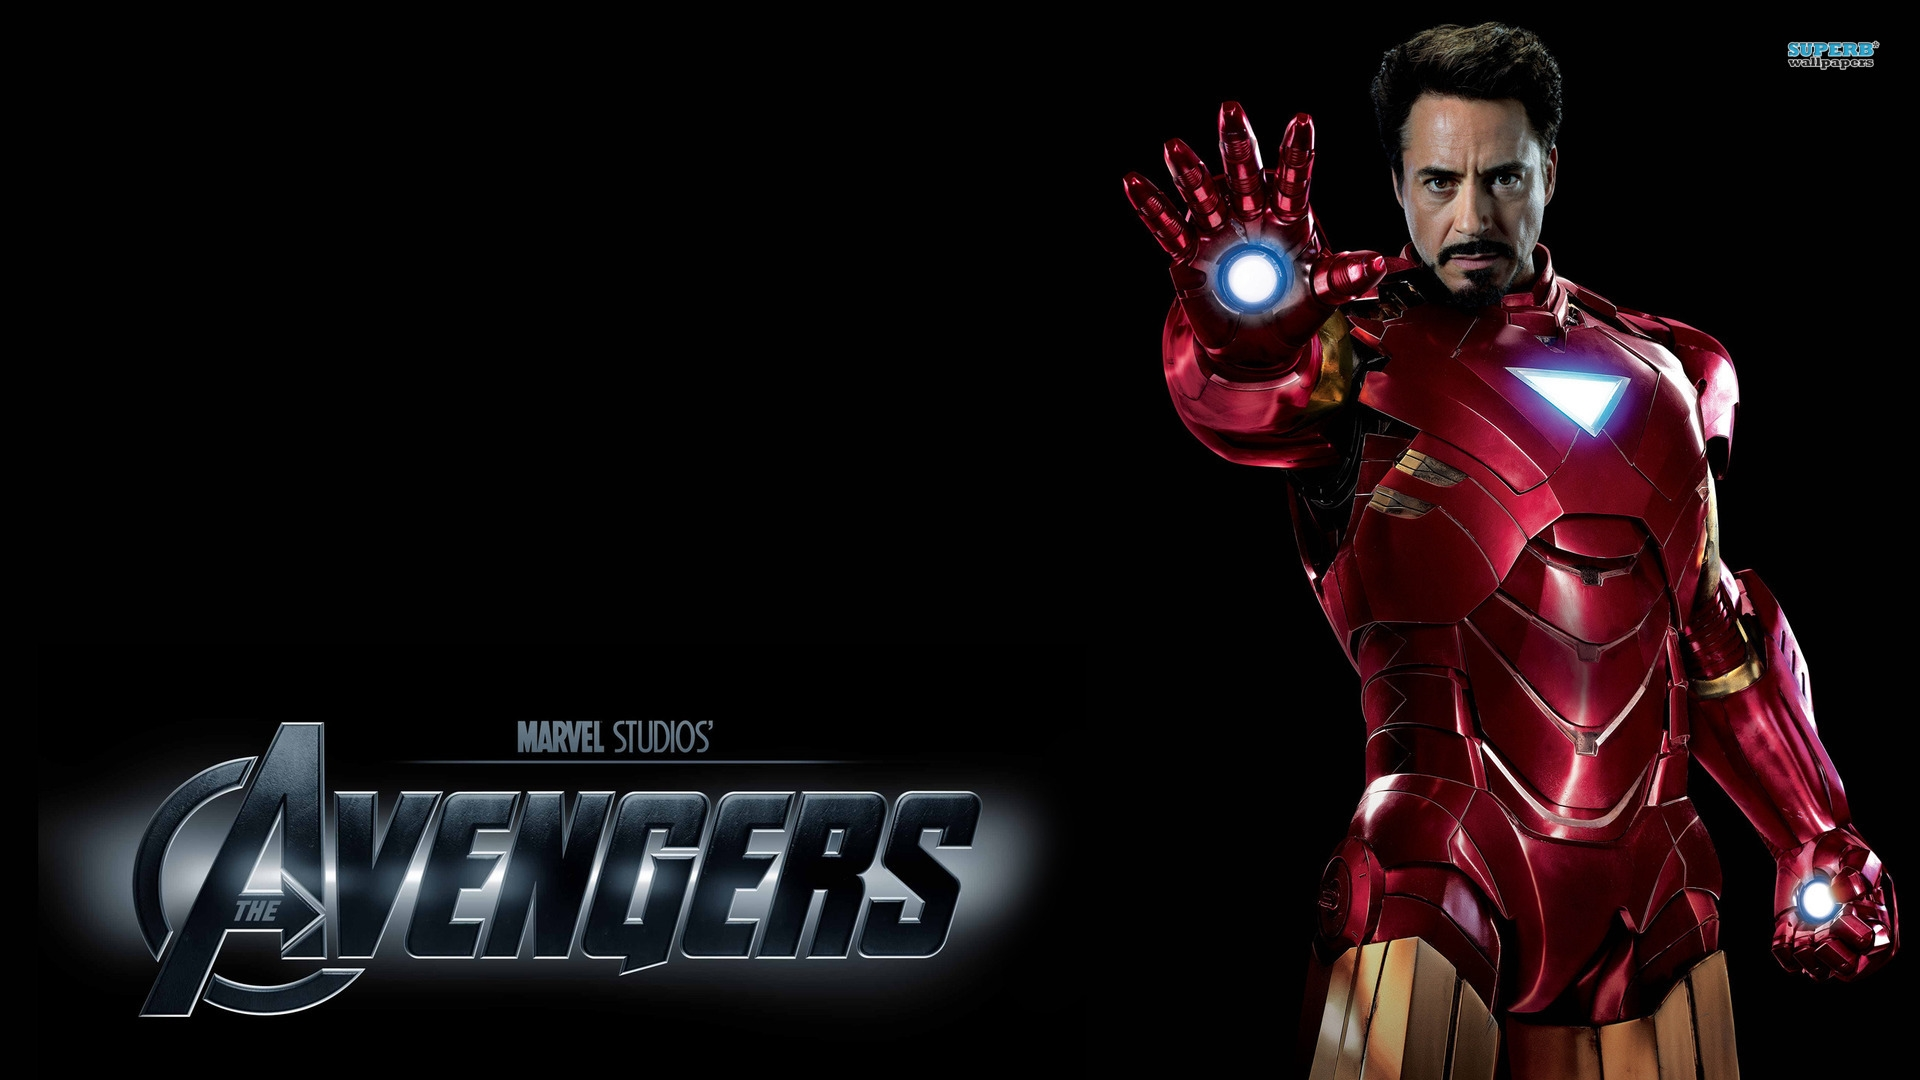 iron man the avengers 920x1080